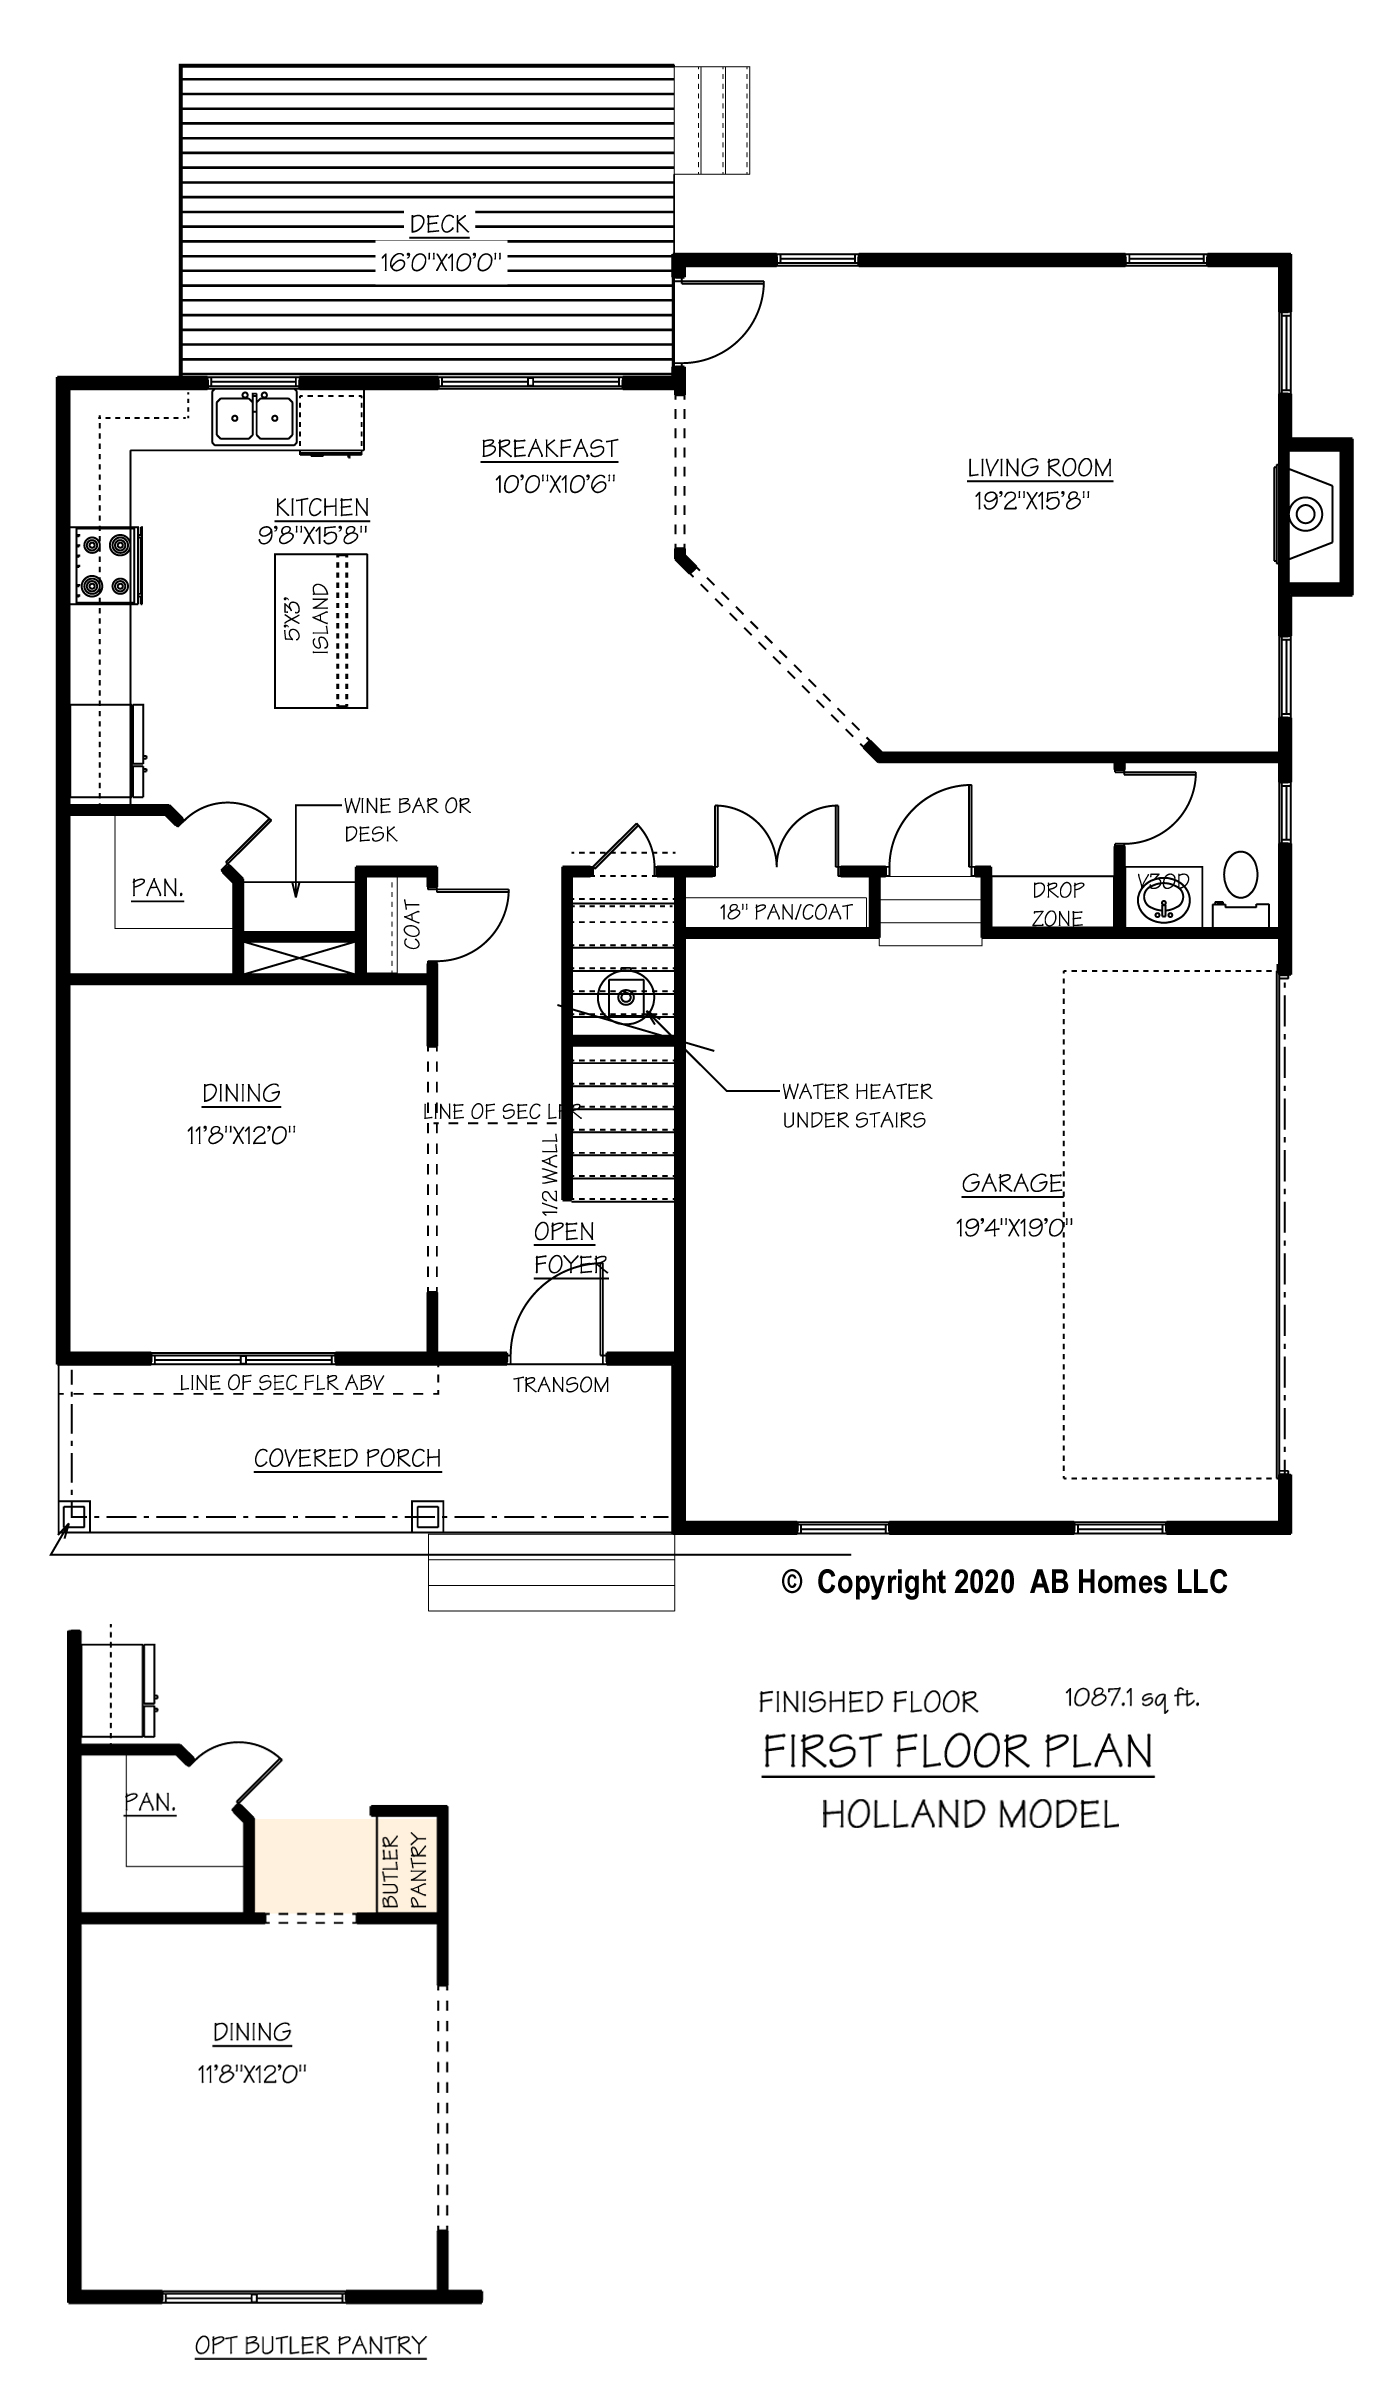 The Holland first floor plan and alternate butler panty into the dining room floor plan by AB Homes